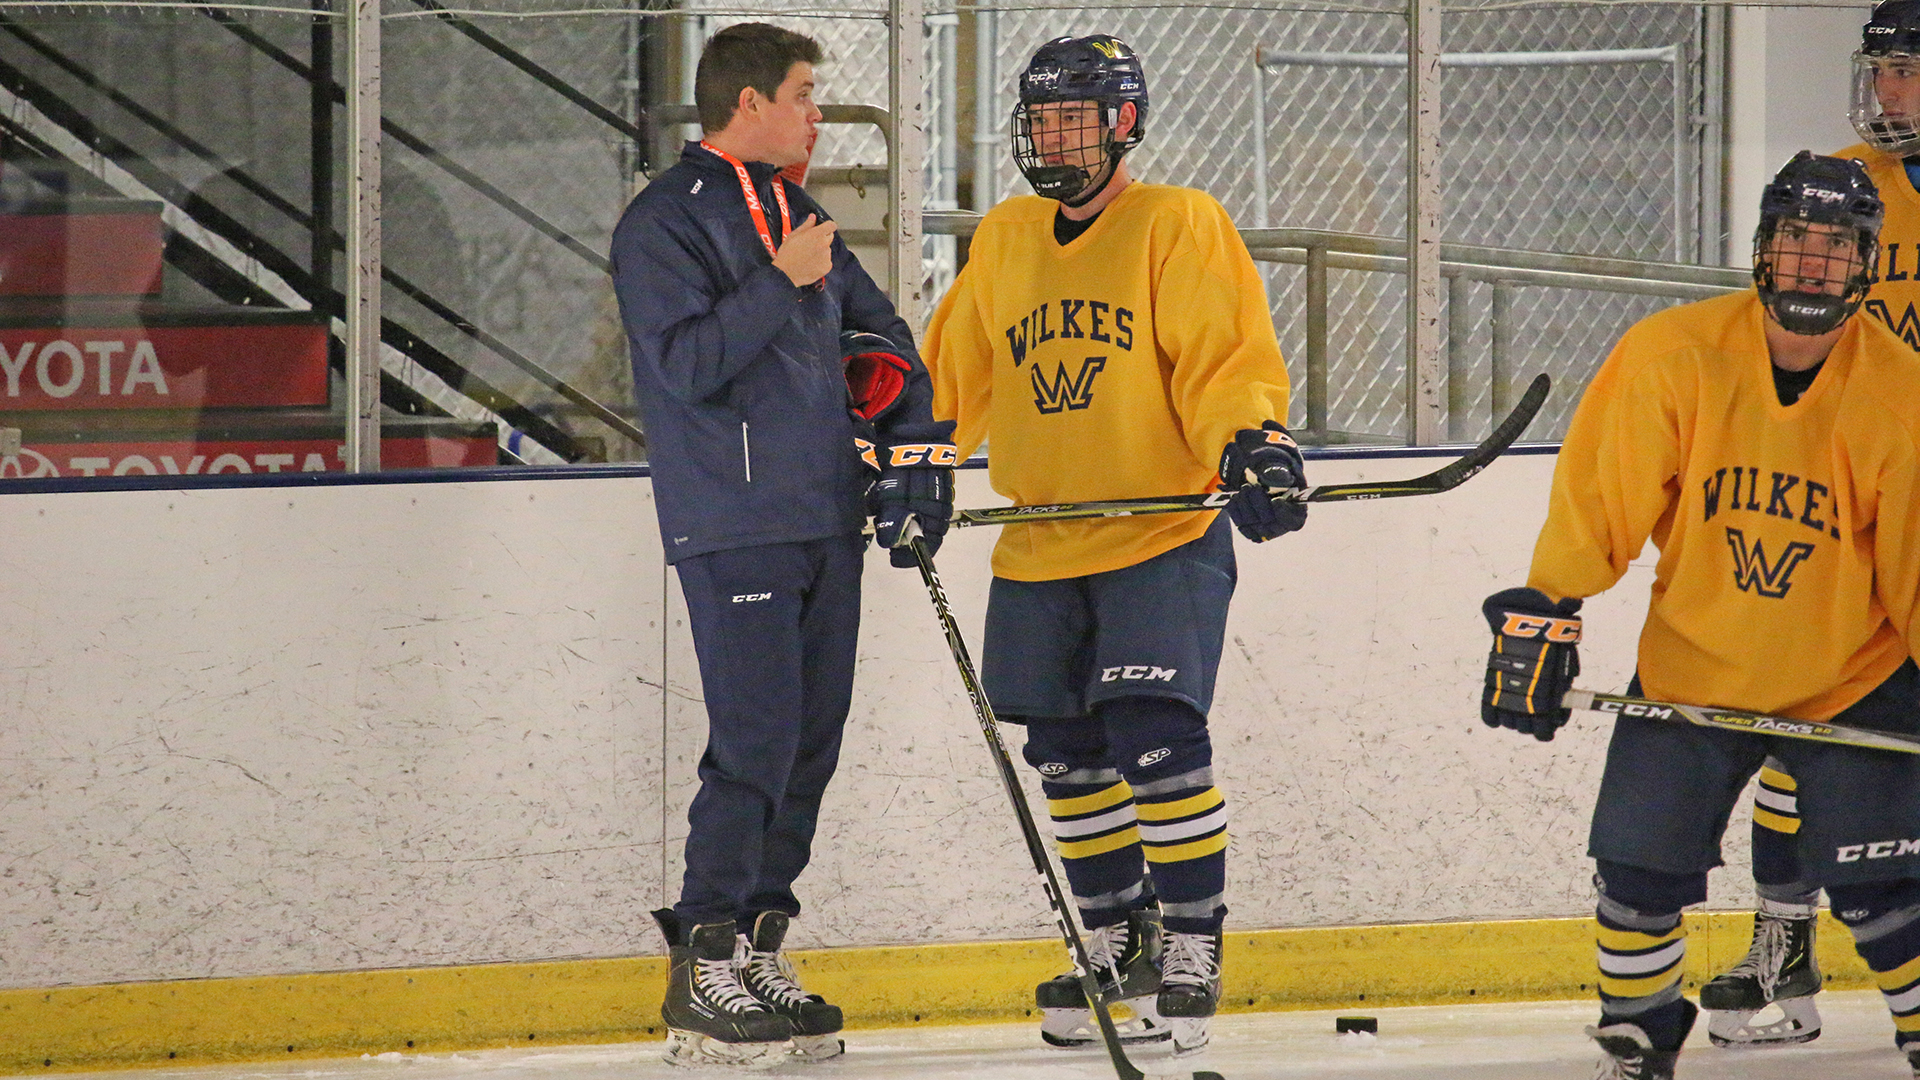 Riley Named Uchc Men S Coach Of The Year Wilkes University Athletics